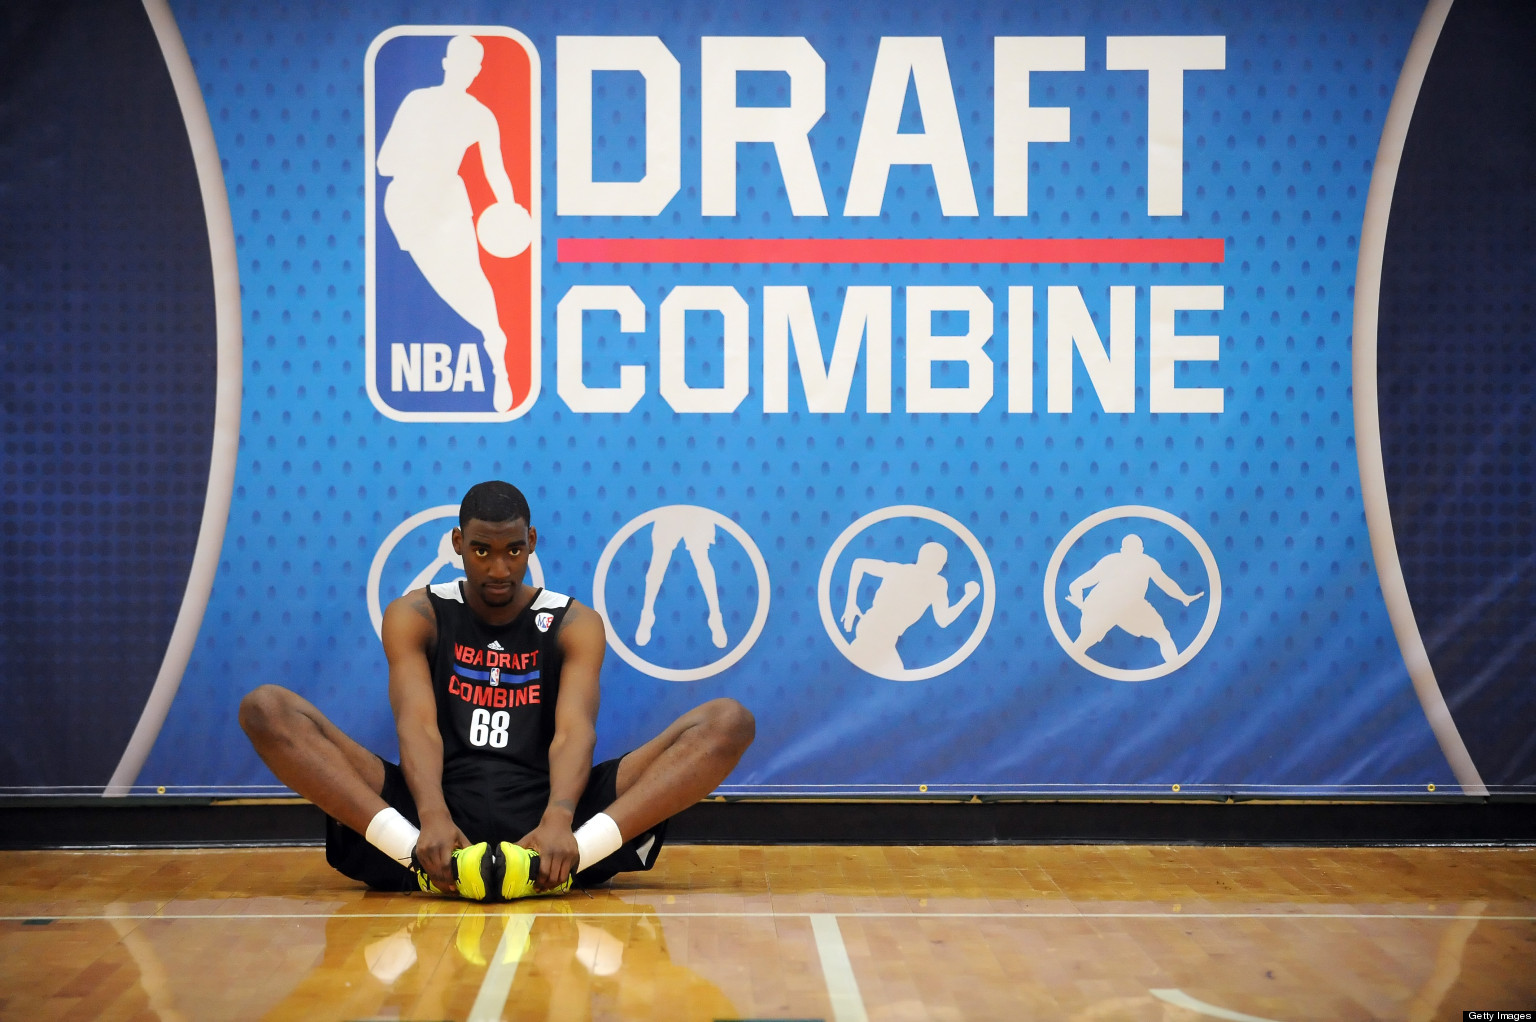 O-nba-draft-2013-facebook